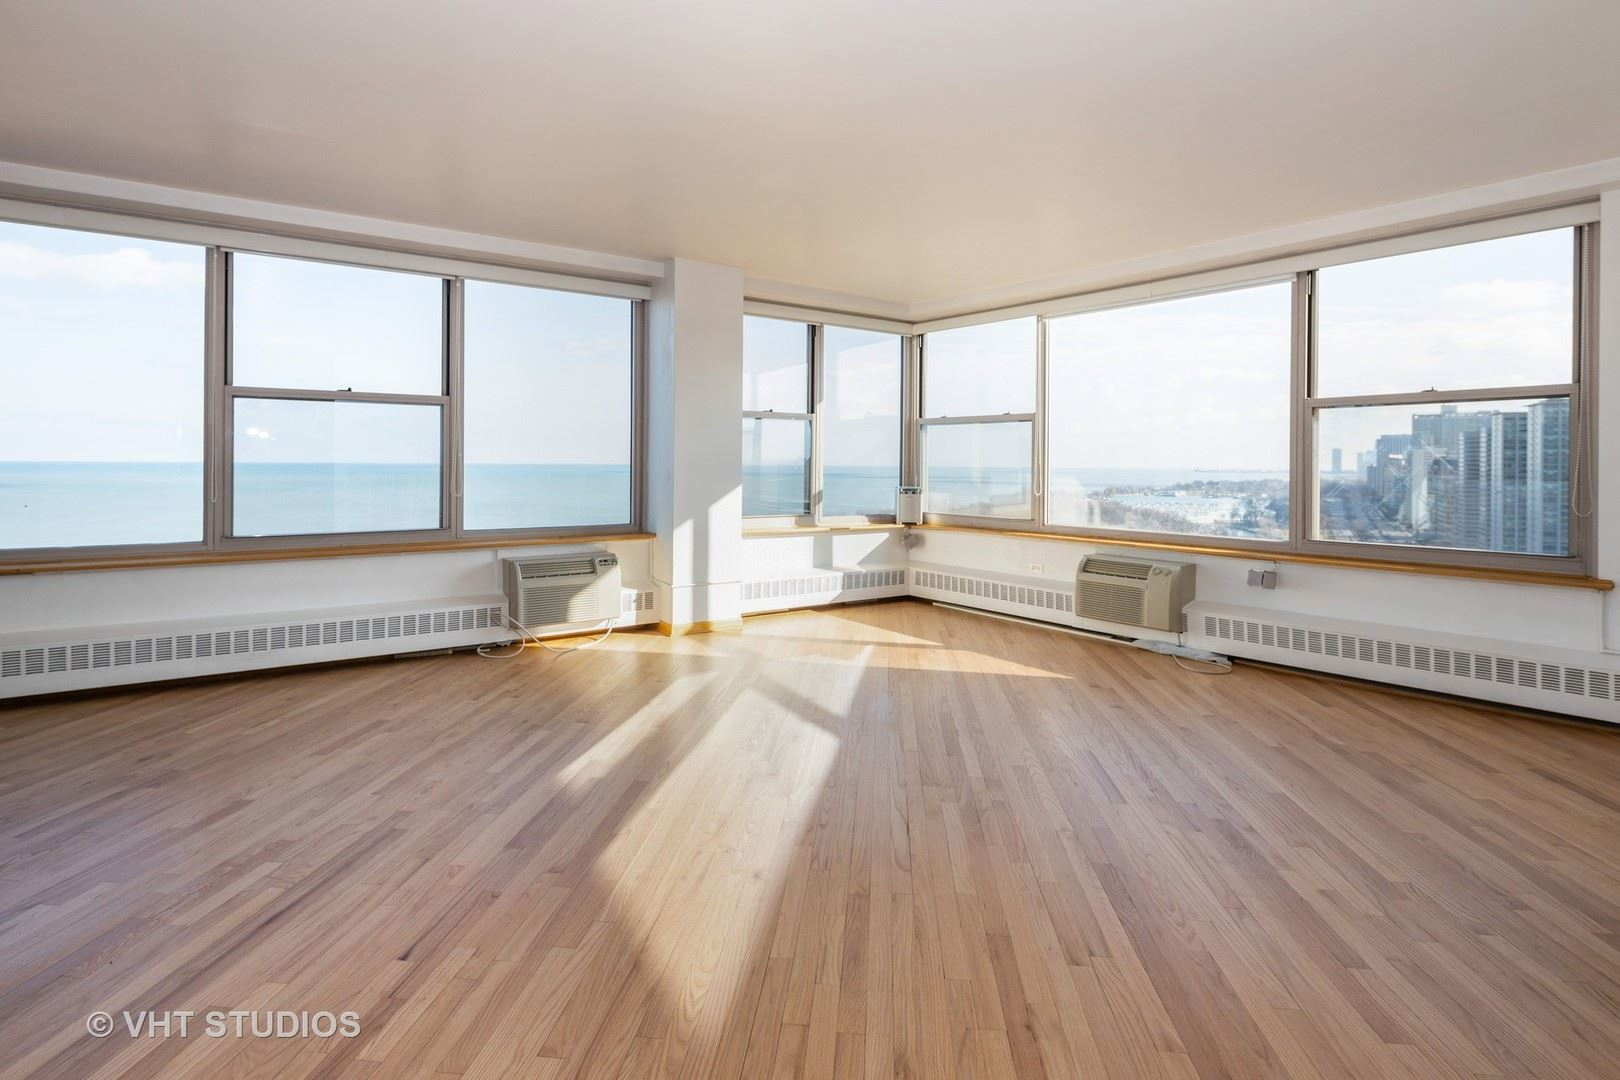 3900 N Lake Shore Drive #21A, Chicago, IL 60613 - #: 10638448